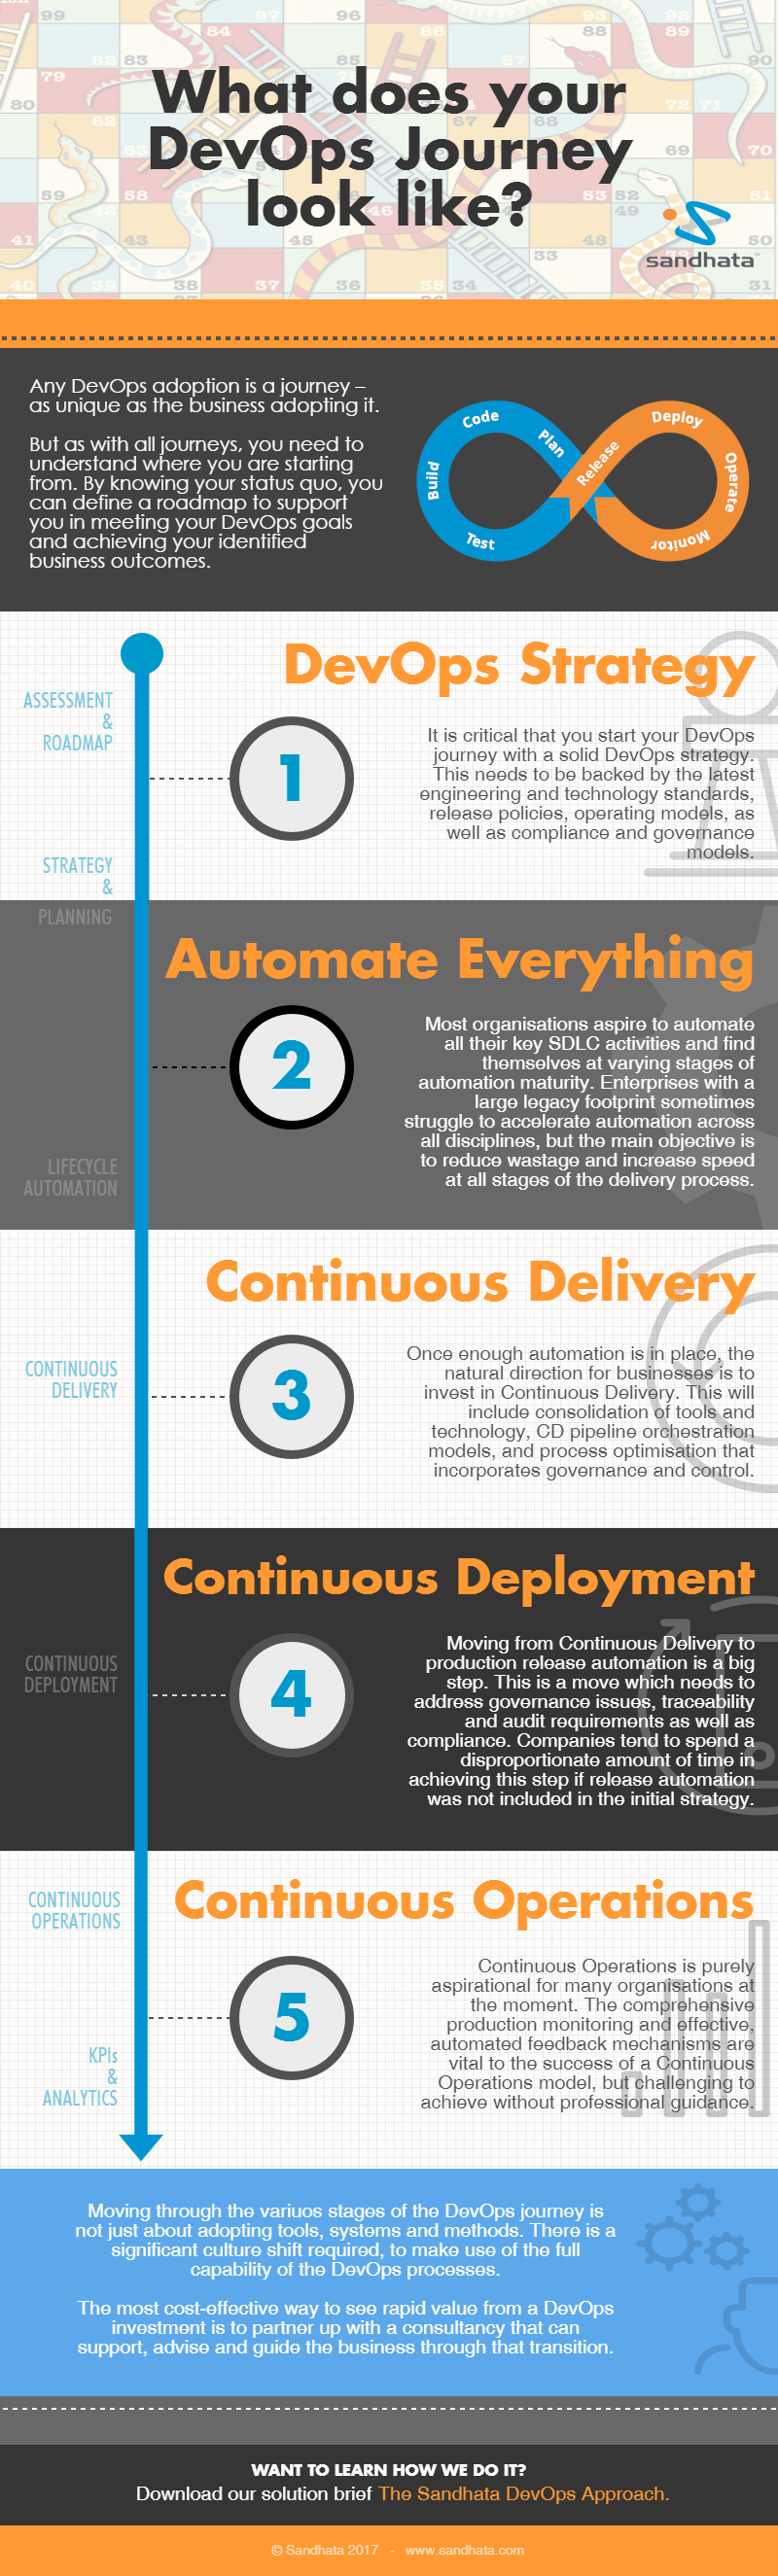 DevOps Journey Infographic